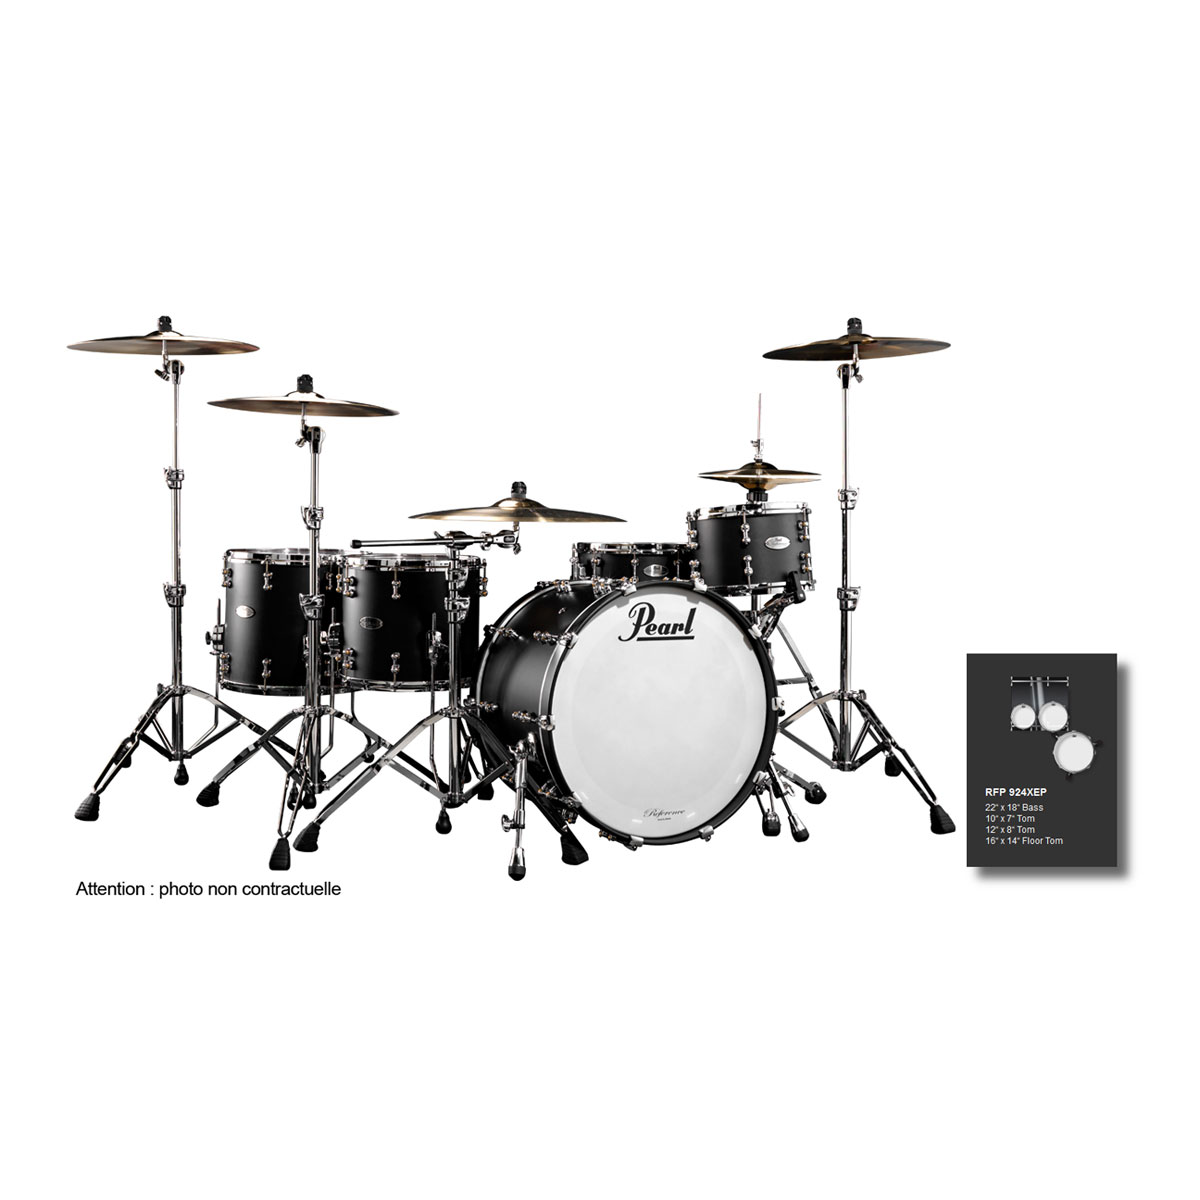 Pearl Rfp924xepc-124 - Reference Pure Hyper Rock 22-10-12-16